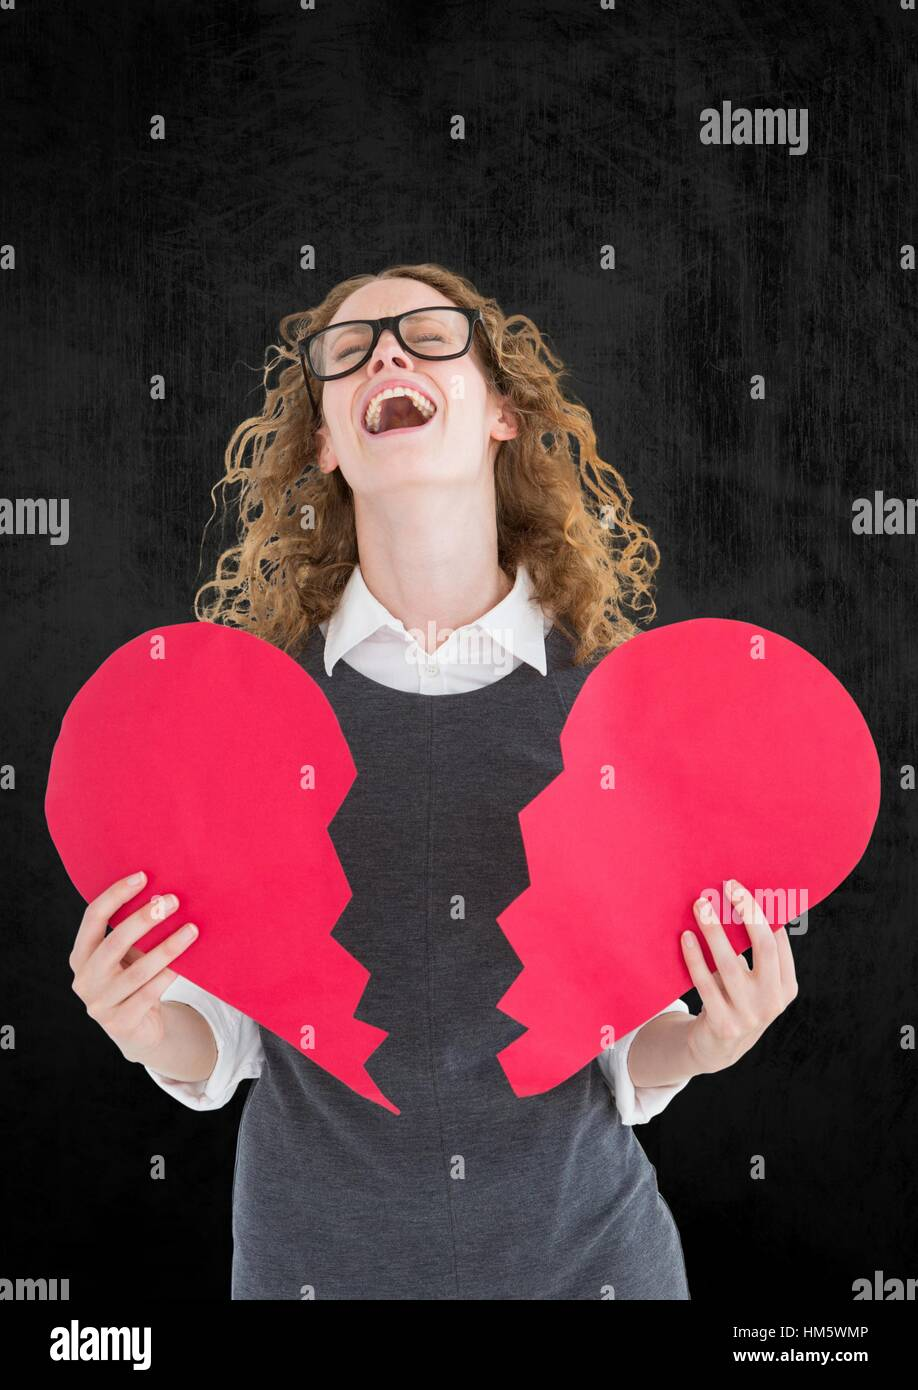 Depressed woman holding broken heart against grey background - Stock Image